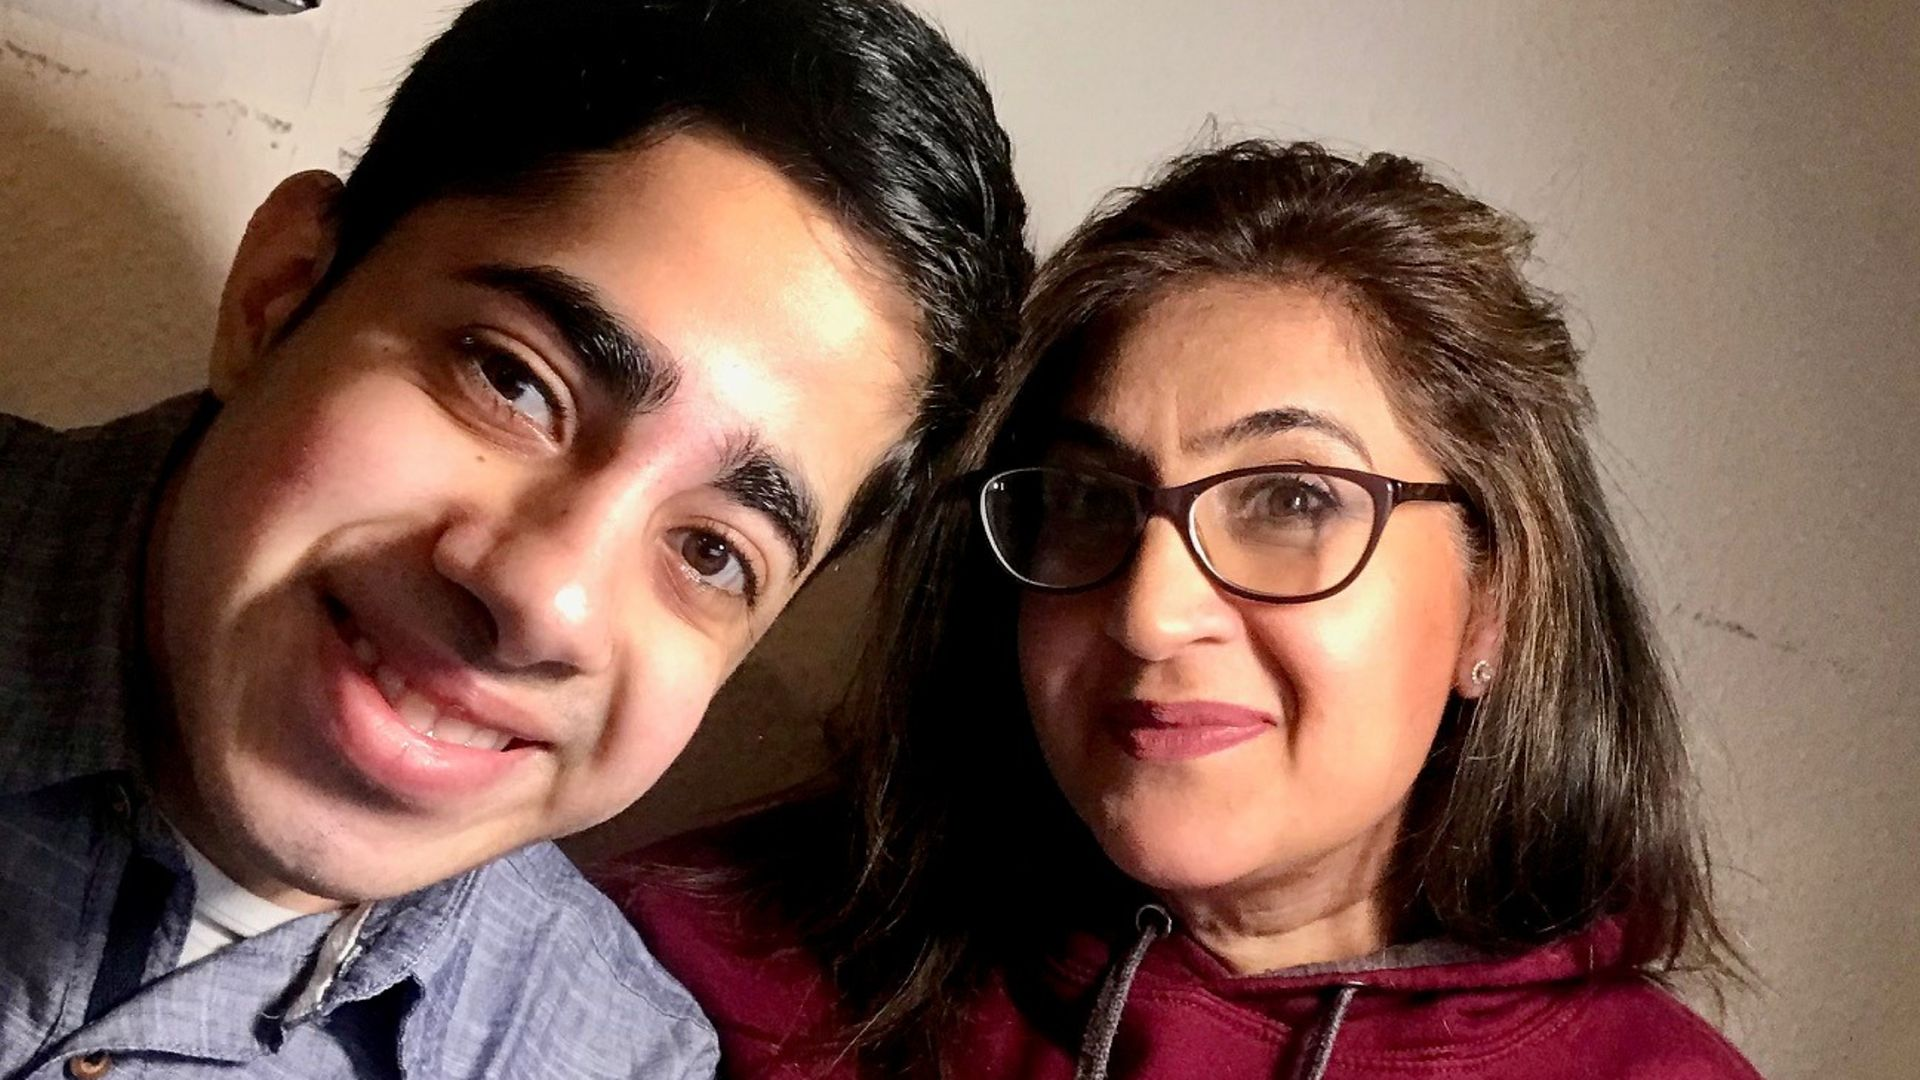 """Faizan Sheikh with his mother. The student, who has a severe stammer, has described US President Joe Biden as an """"inspiration"""" for opening up about his own speech condition. - Credit: PA"""